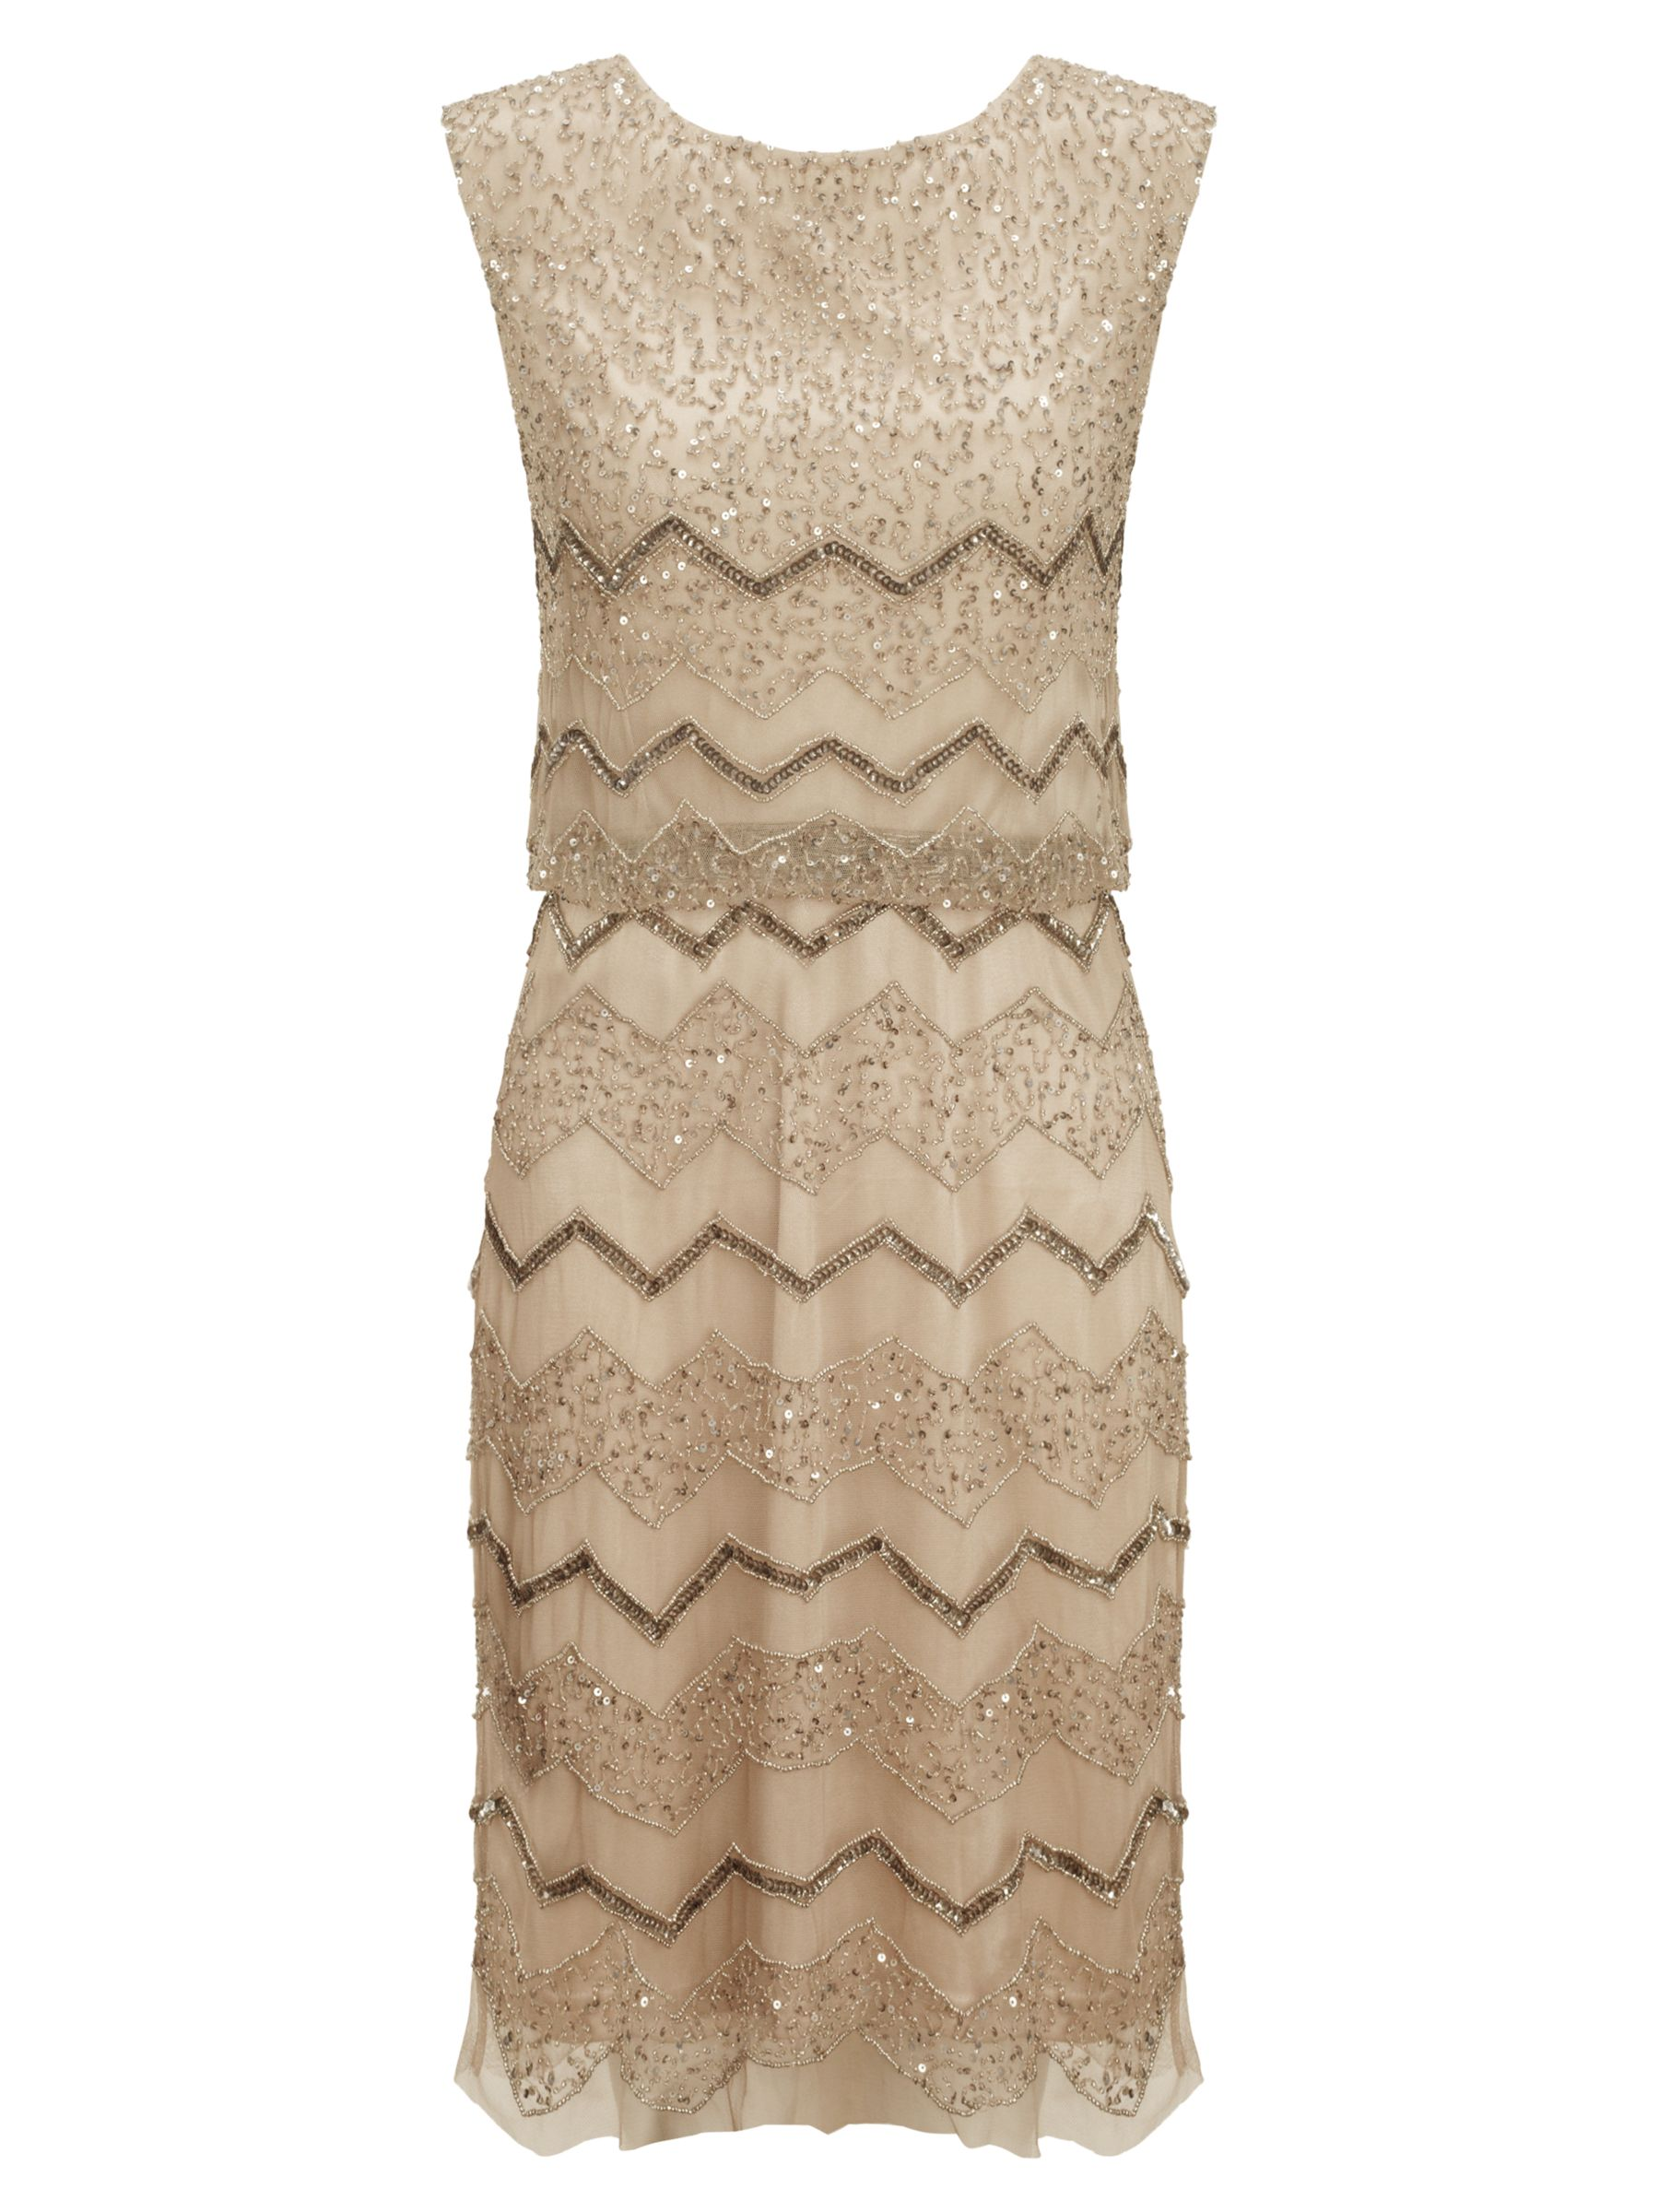 adrianna papell short blouson beaded dress beige, adrianna, papell, short, blouson, beaded, dress, beige, adrianna papell, 12|14|10|16, women, eveningwear, brands a-k, womens dresses, special offers, womenswear offers, womens dresses offers, 1839309